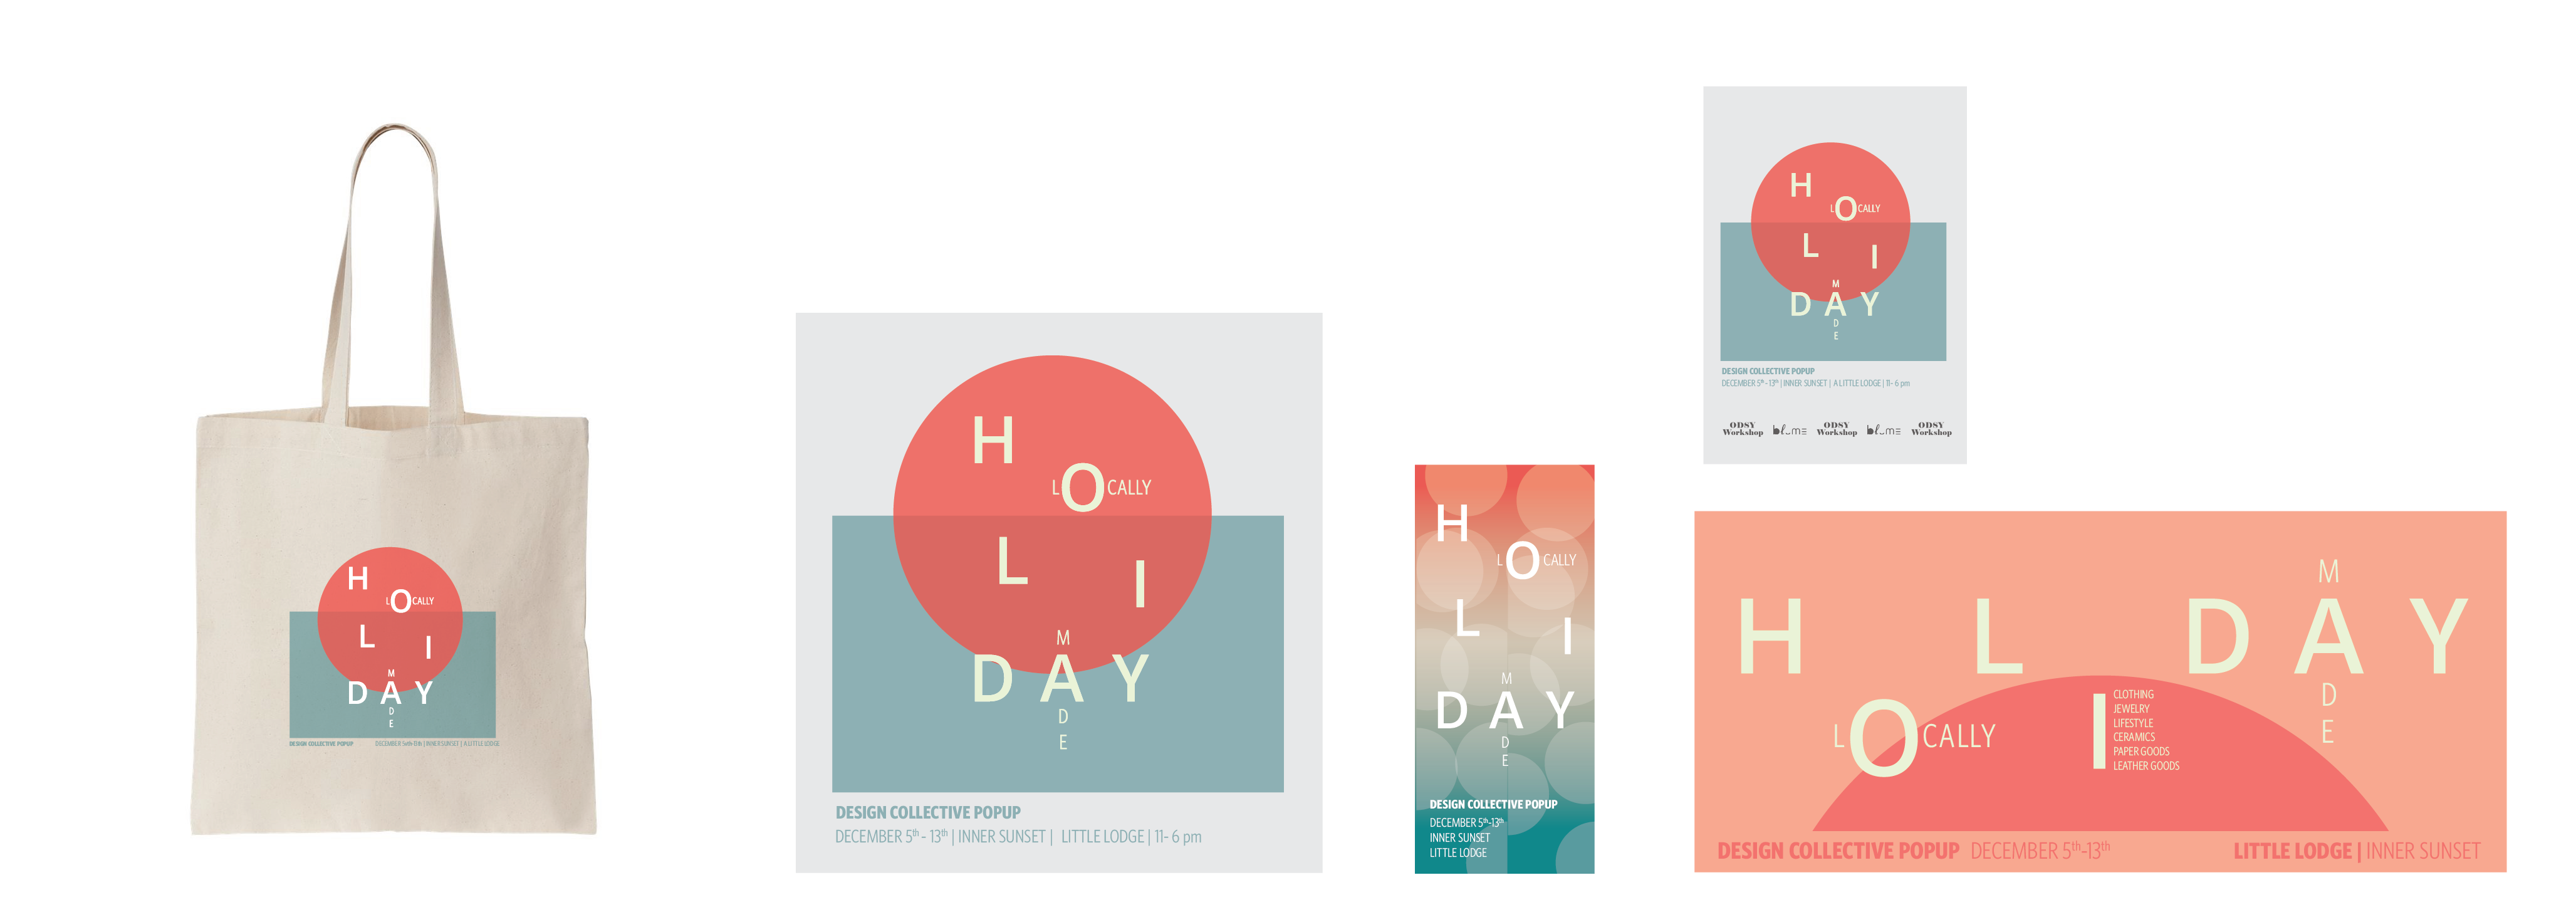 Holiday Design Collective